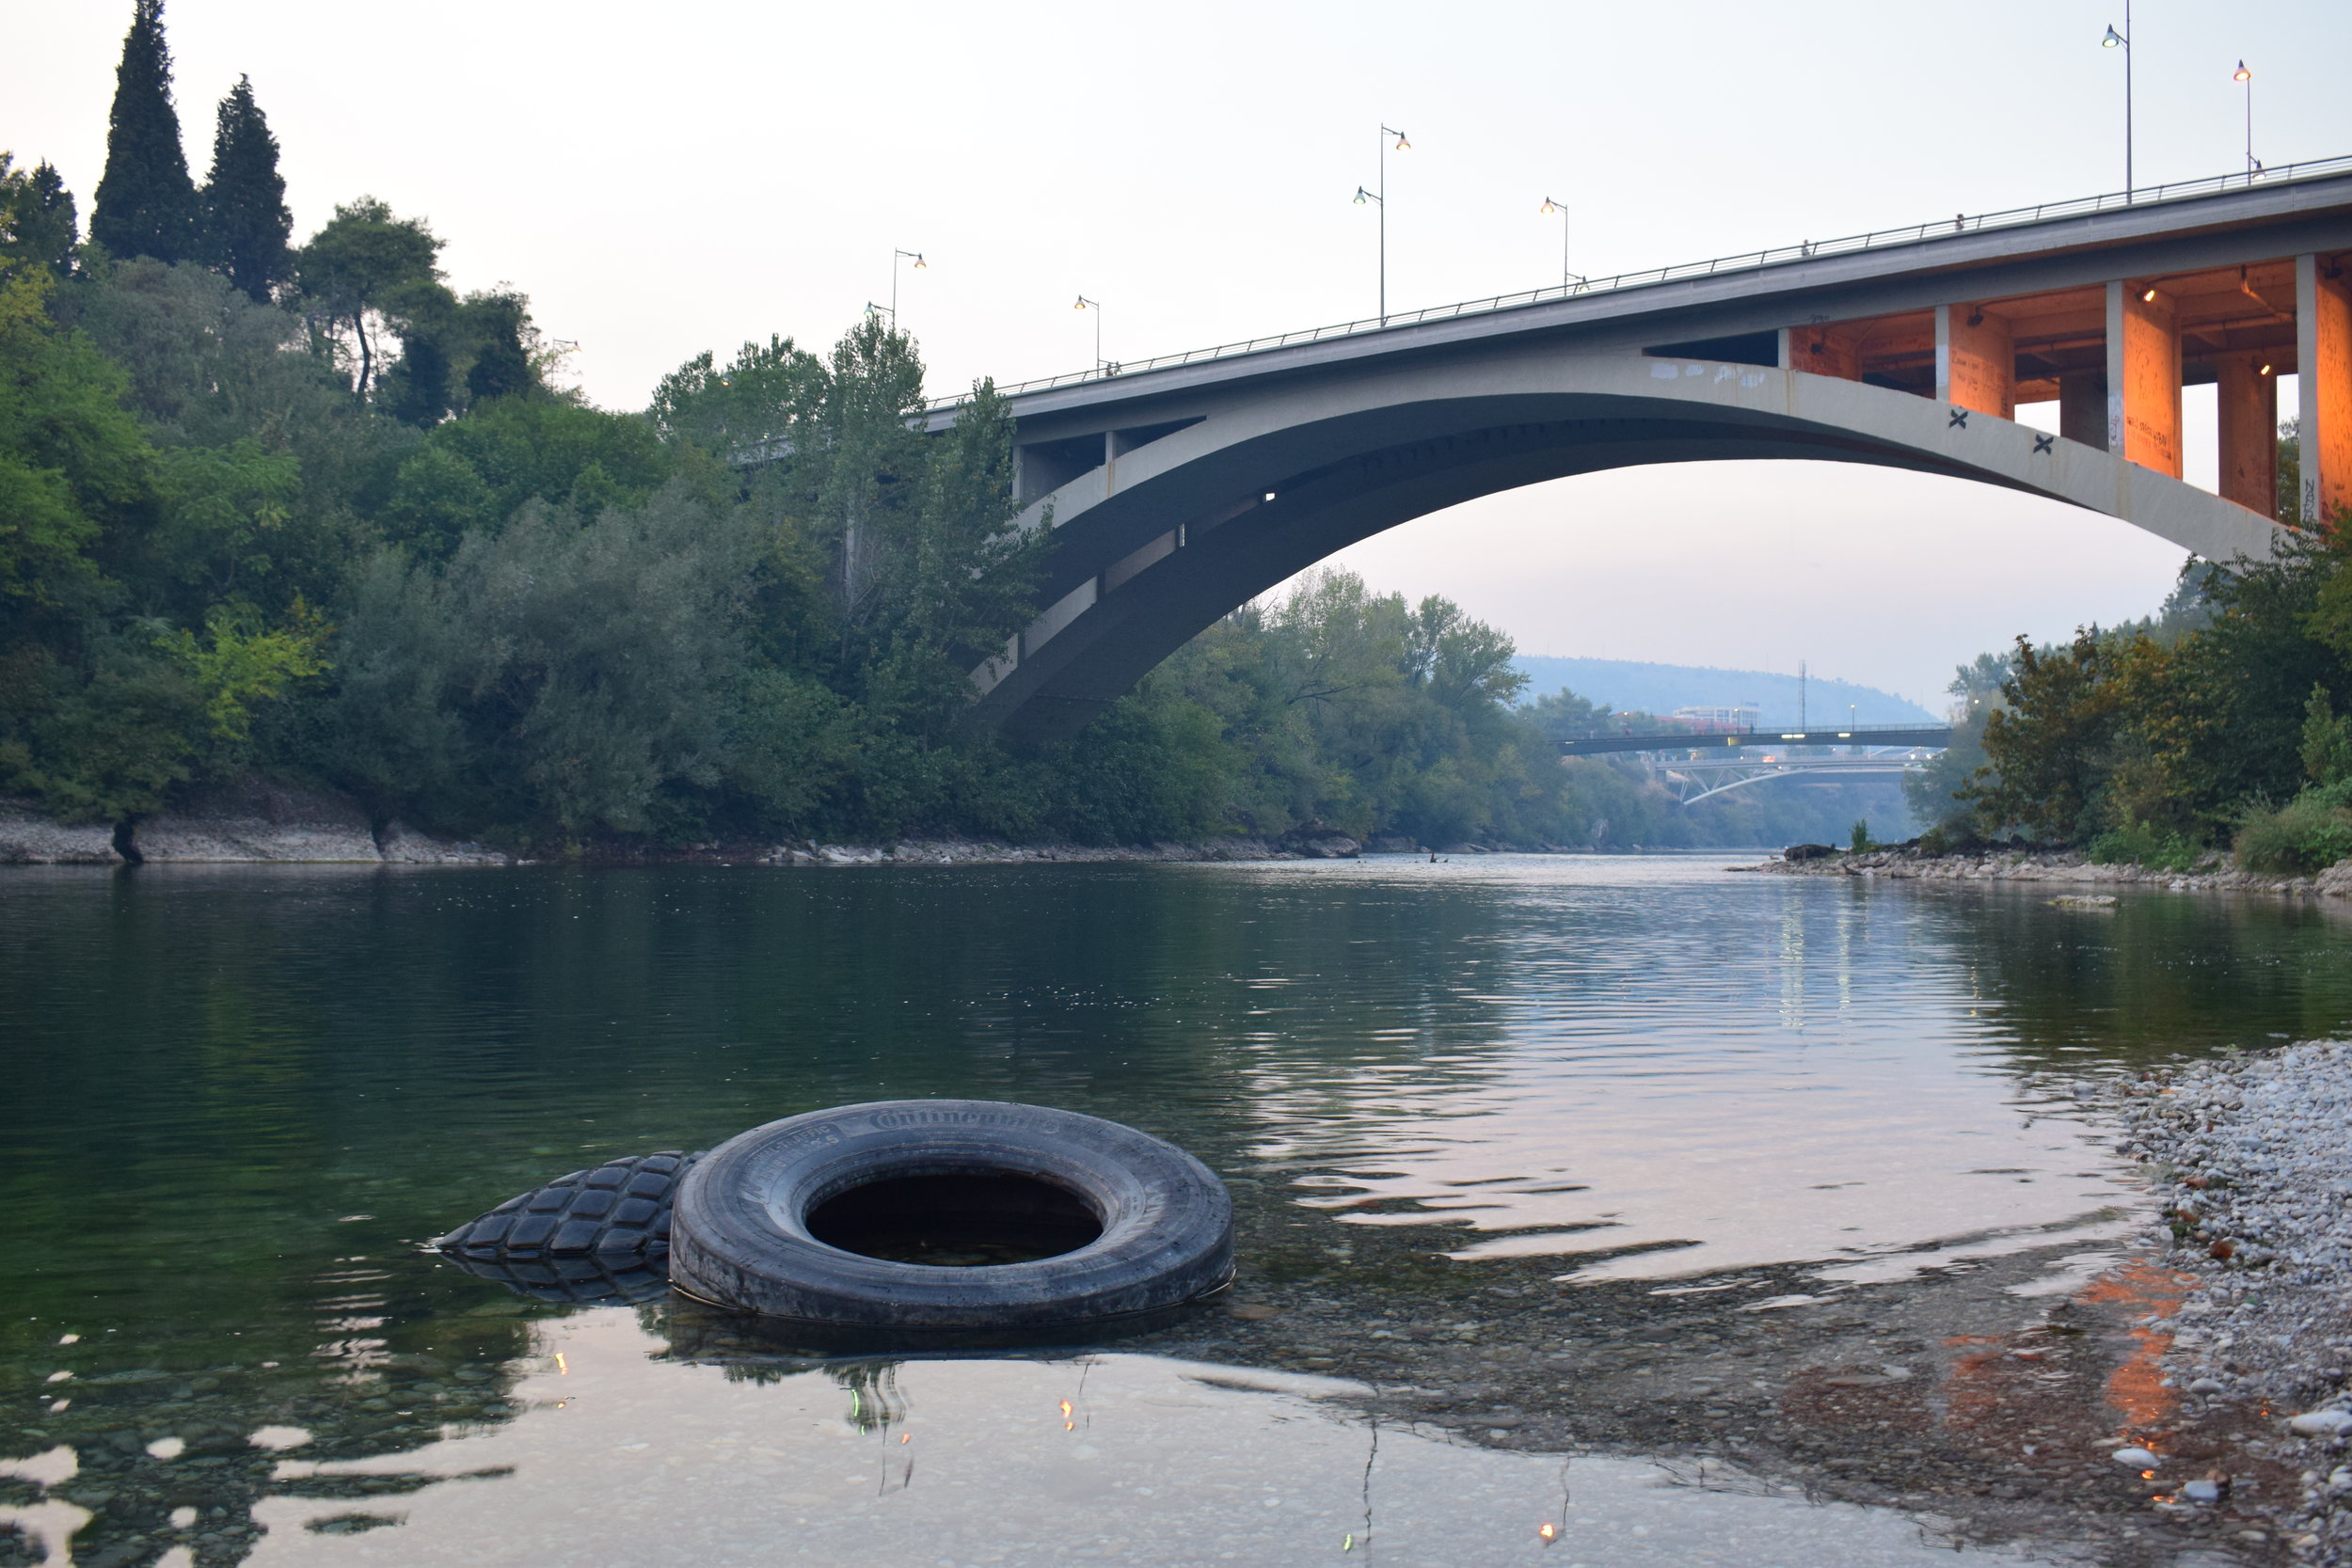 Two abandoned tyres in a river was genuinely one of the most photogenic parts of Podgorica.